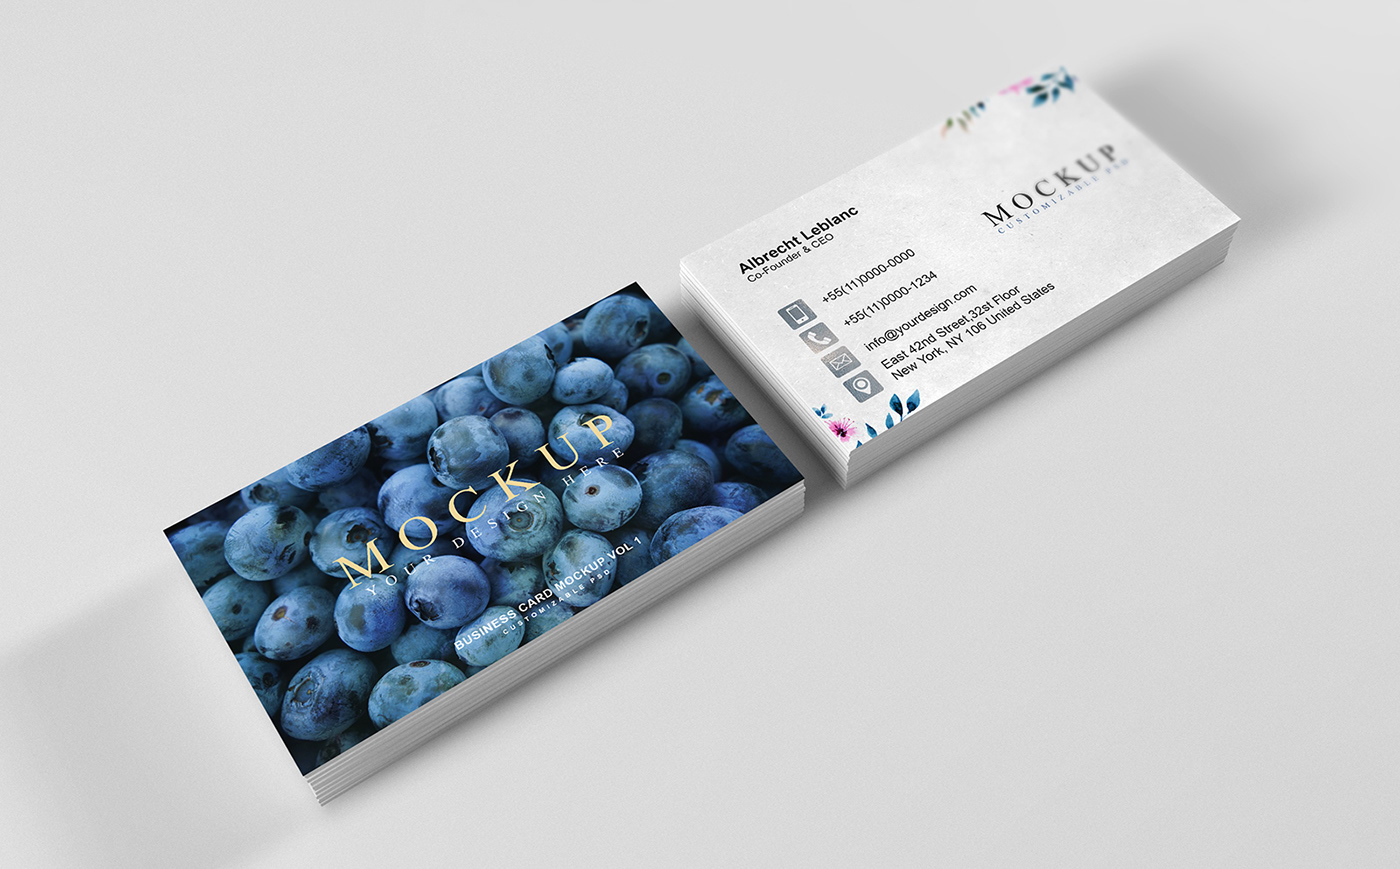 Business card mockup vol 1 psd download on behance zip file containing 7 psd files high quiality 300 dpi 2900 x 1800 px 1 pdf file download 7 business card mockup vol 1 reheart Images